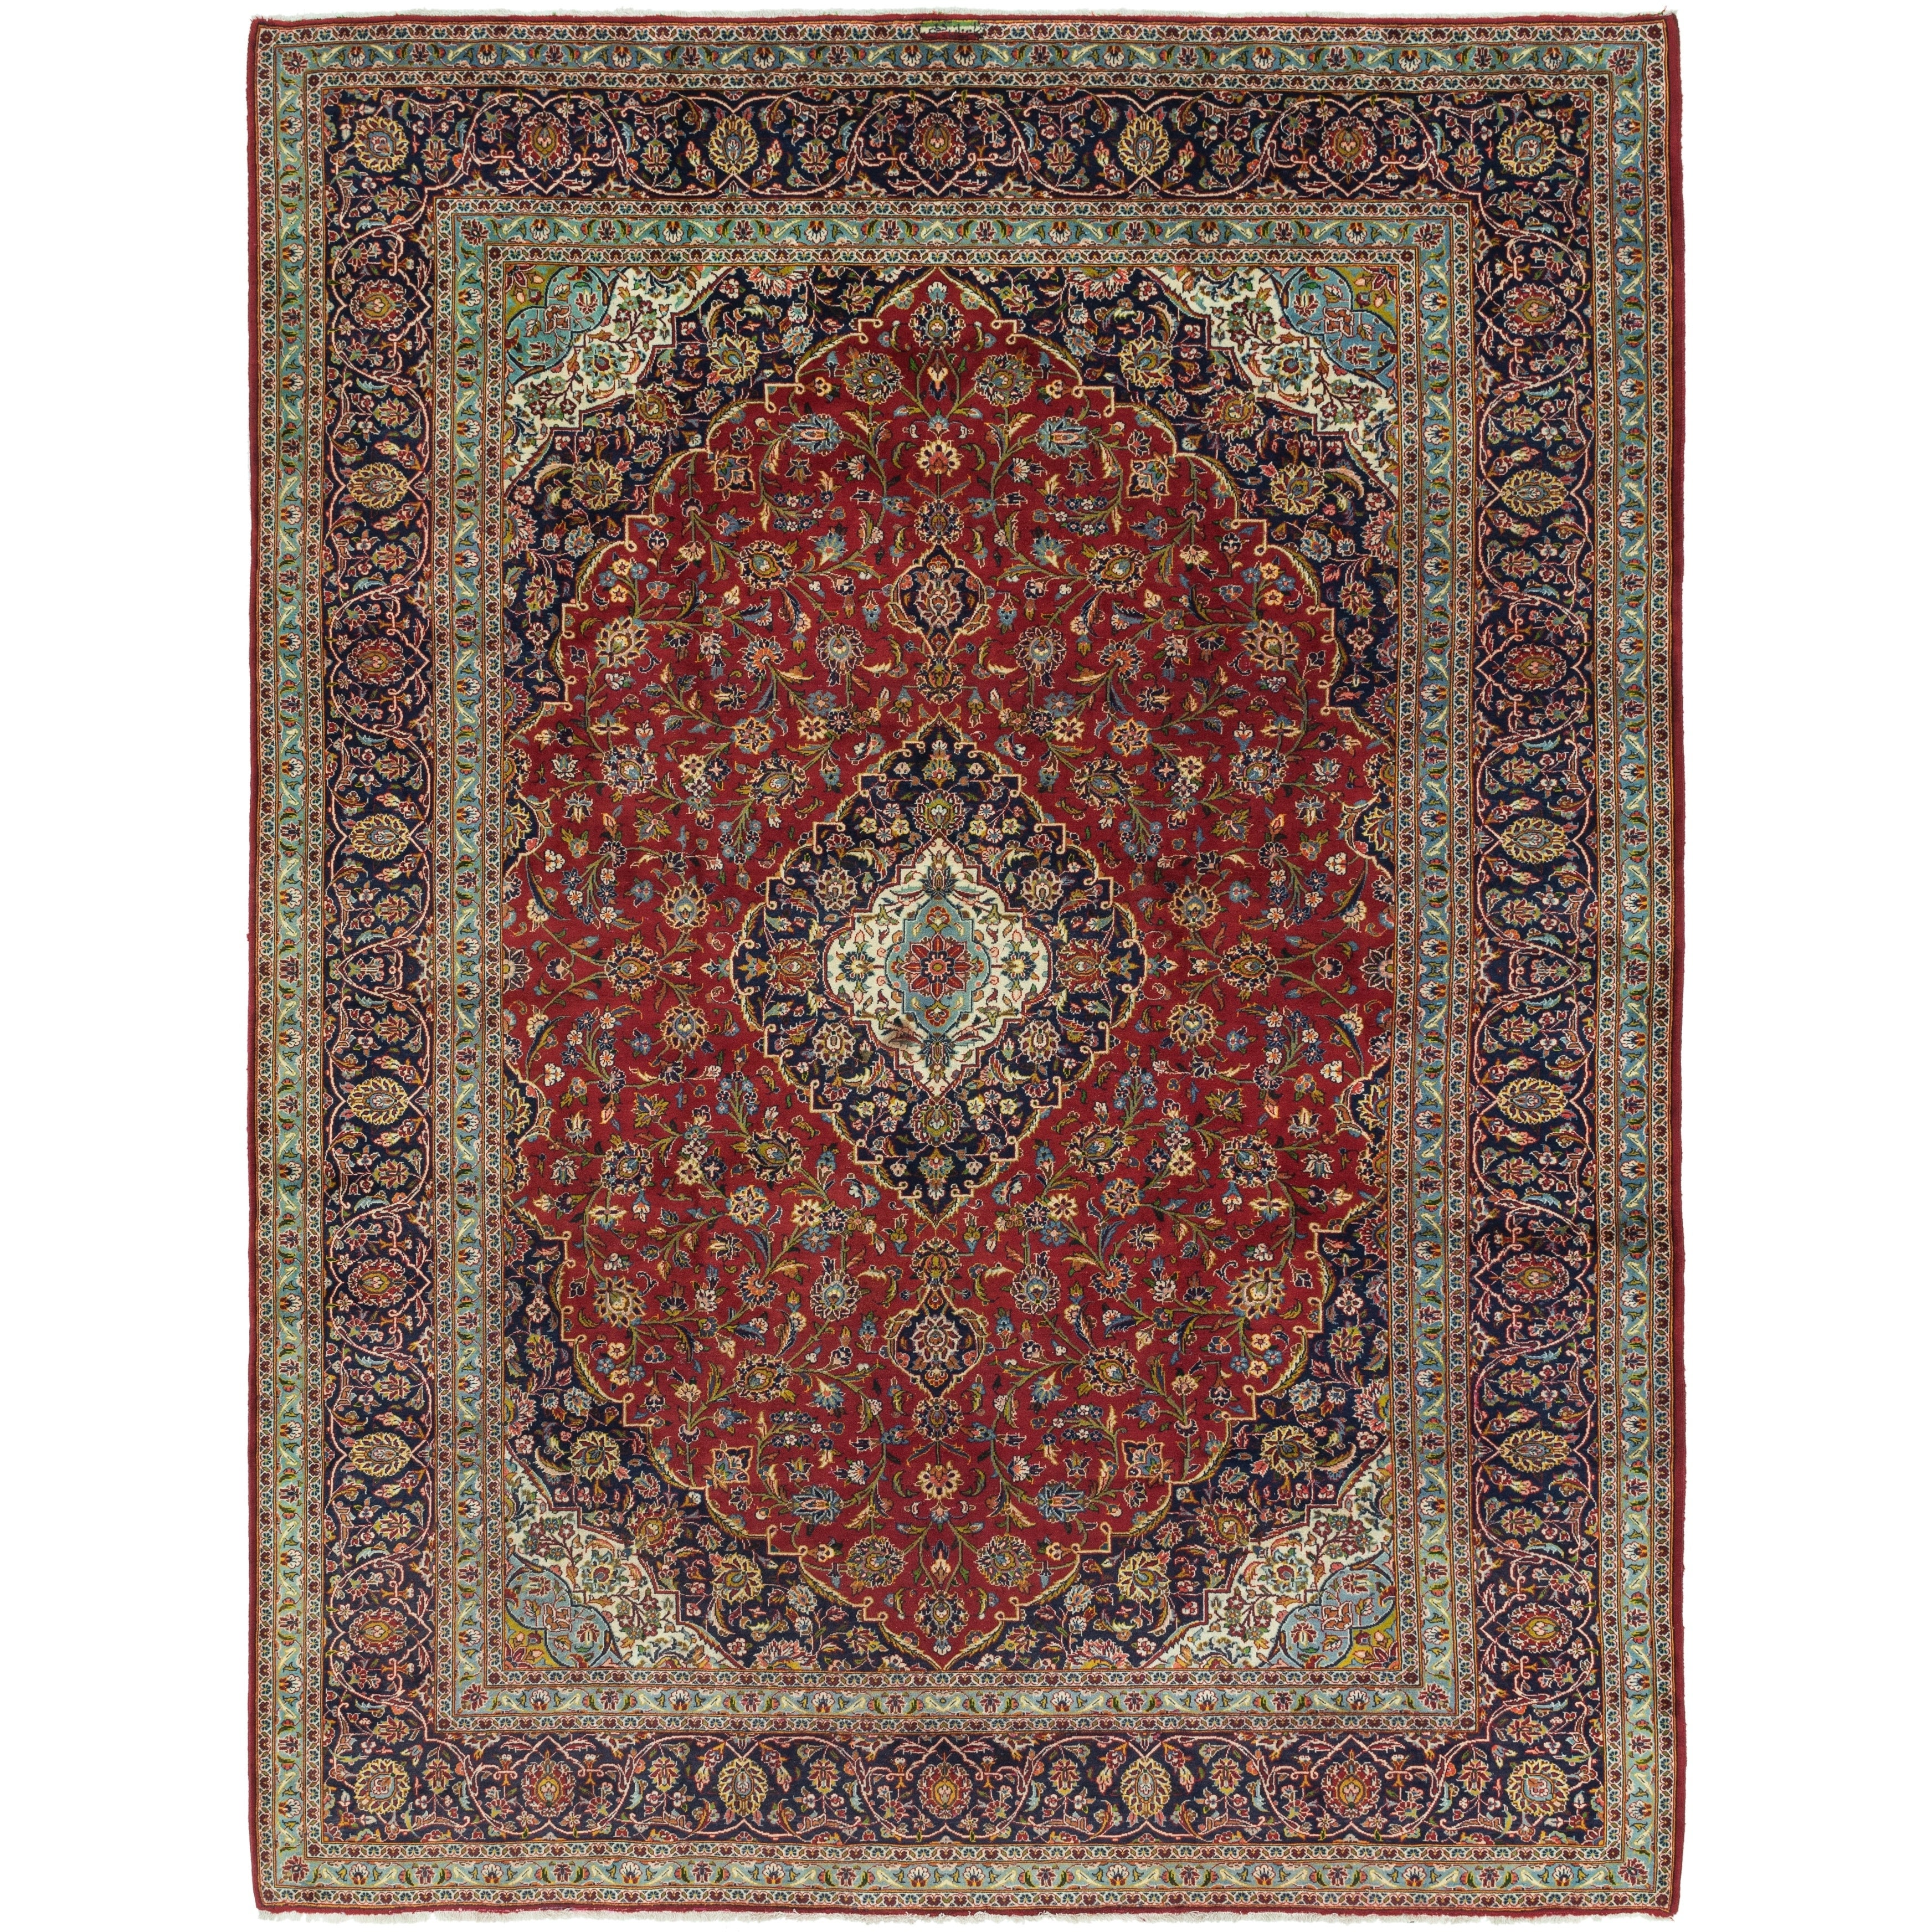 Hand Knotted Kashan Wool Area Rug - 9 10 x 13 4 (Red - 9 10 x 13 4)